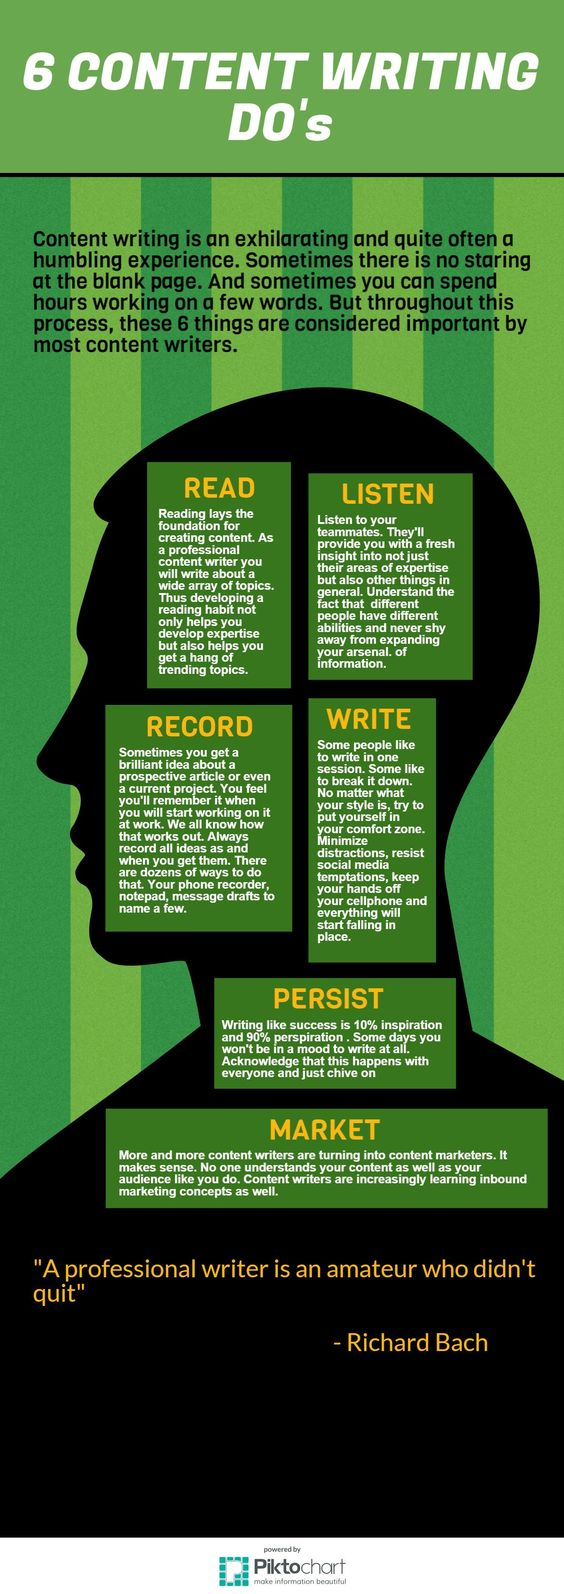 6 Content Writing Do's #infographic #ContentWriting #ContentMarketing